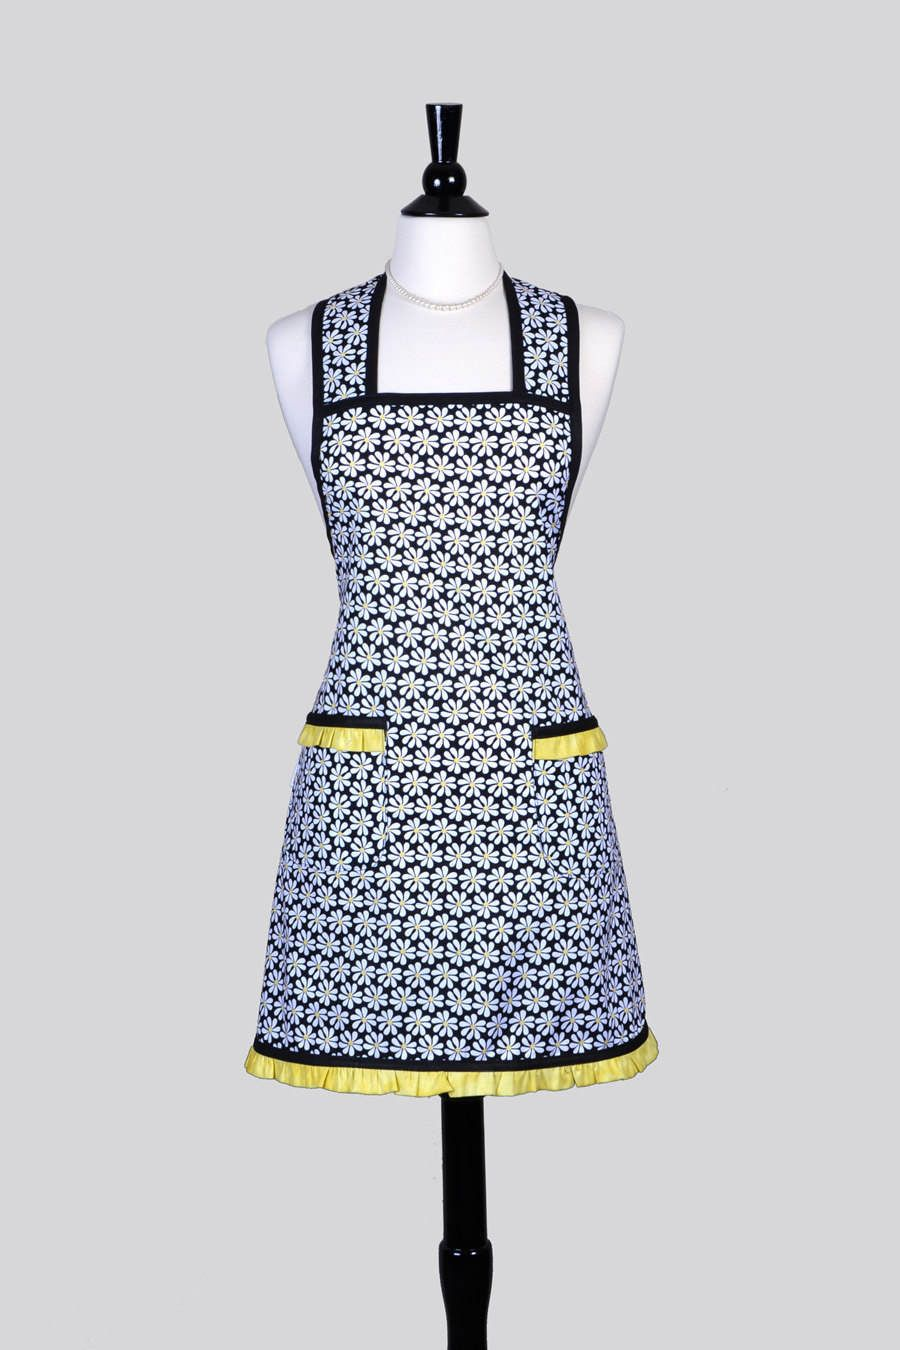 Women S Kitchen A Black And White Daisies Yellow Trim Fabric Old Fashioned Styling Large Pockets One Size Fits Most Plus